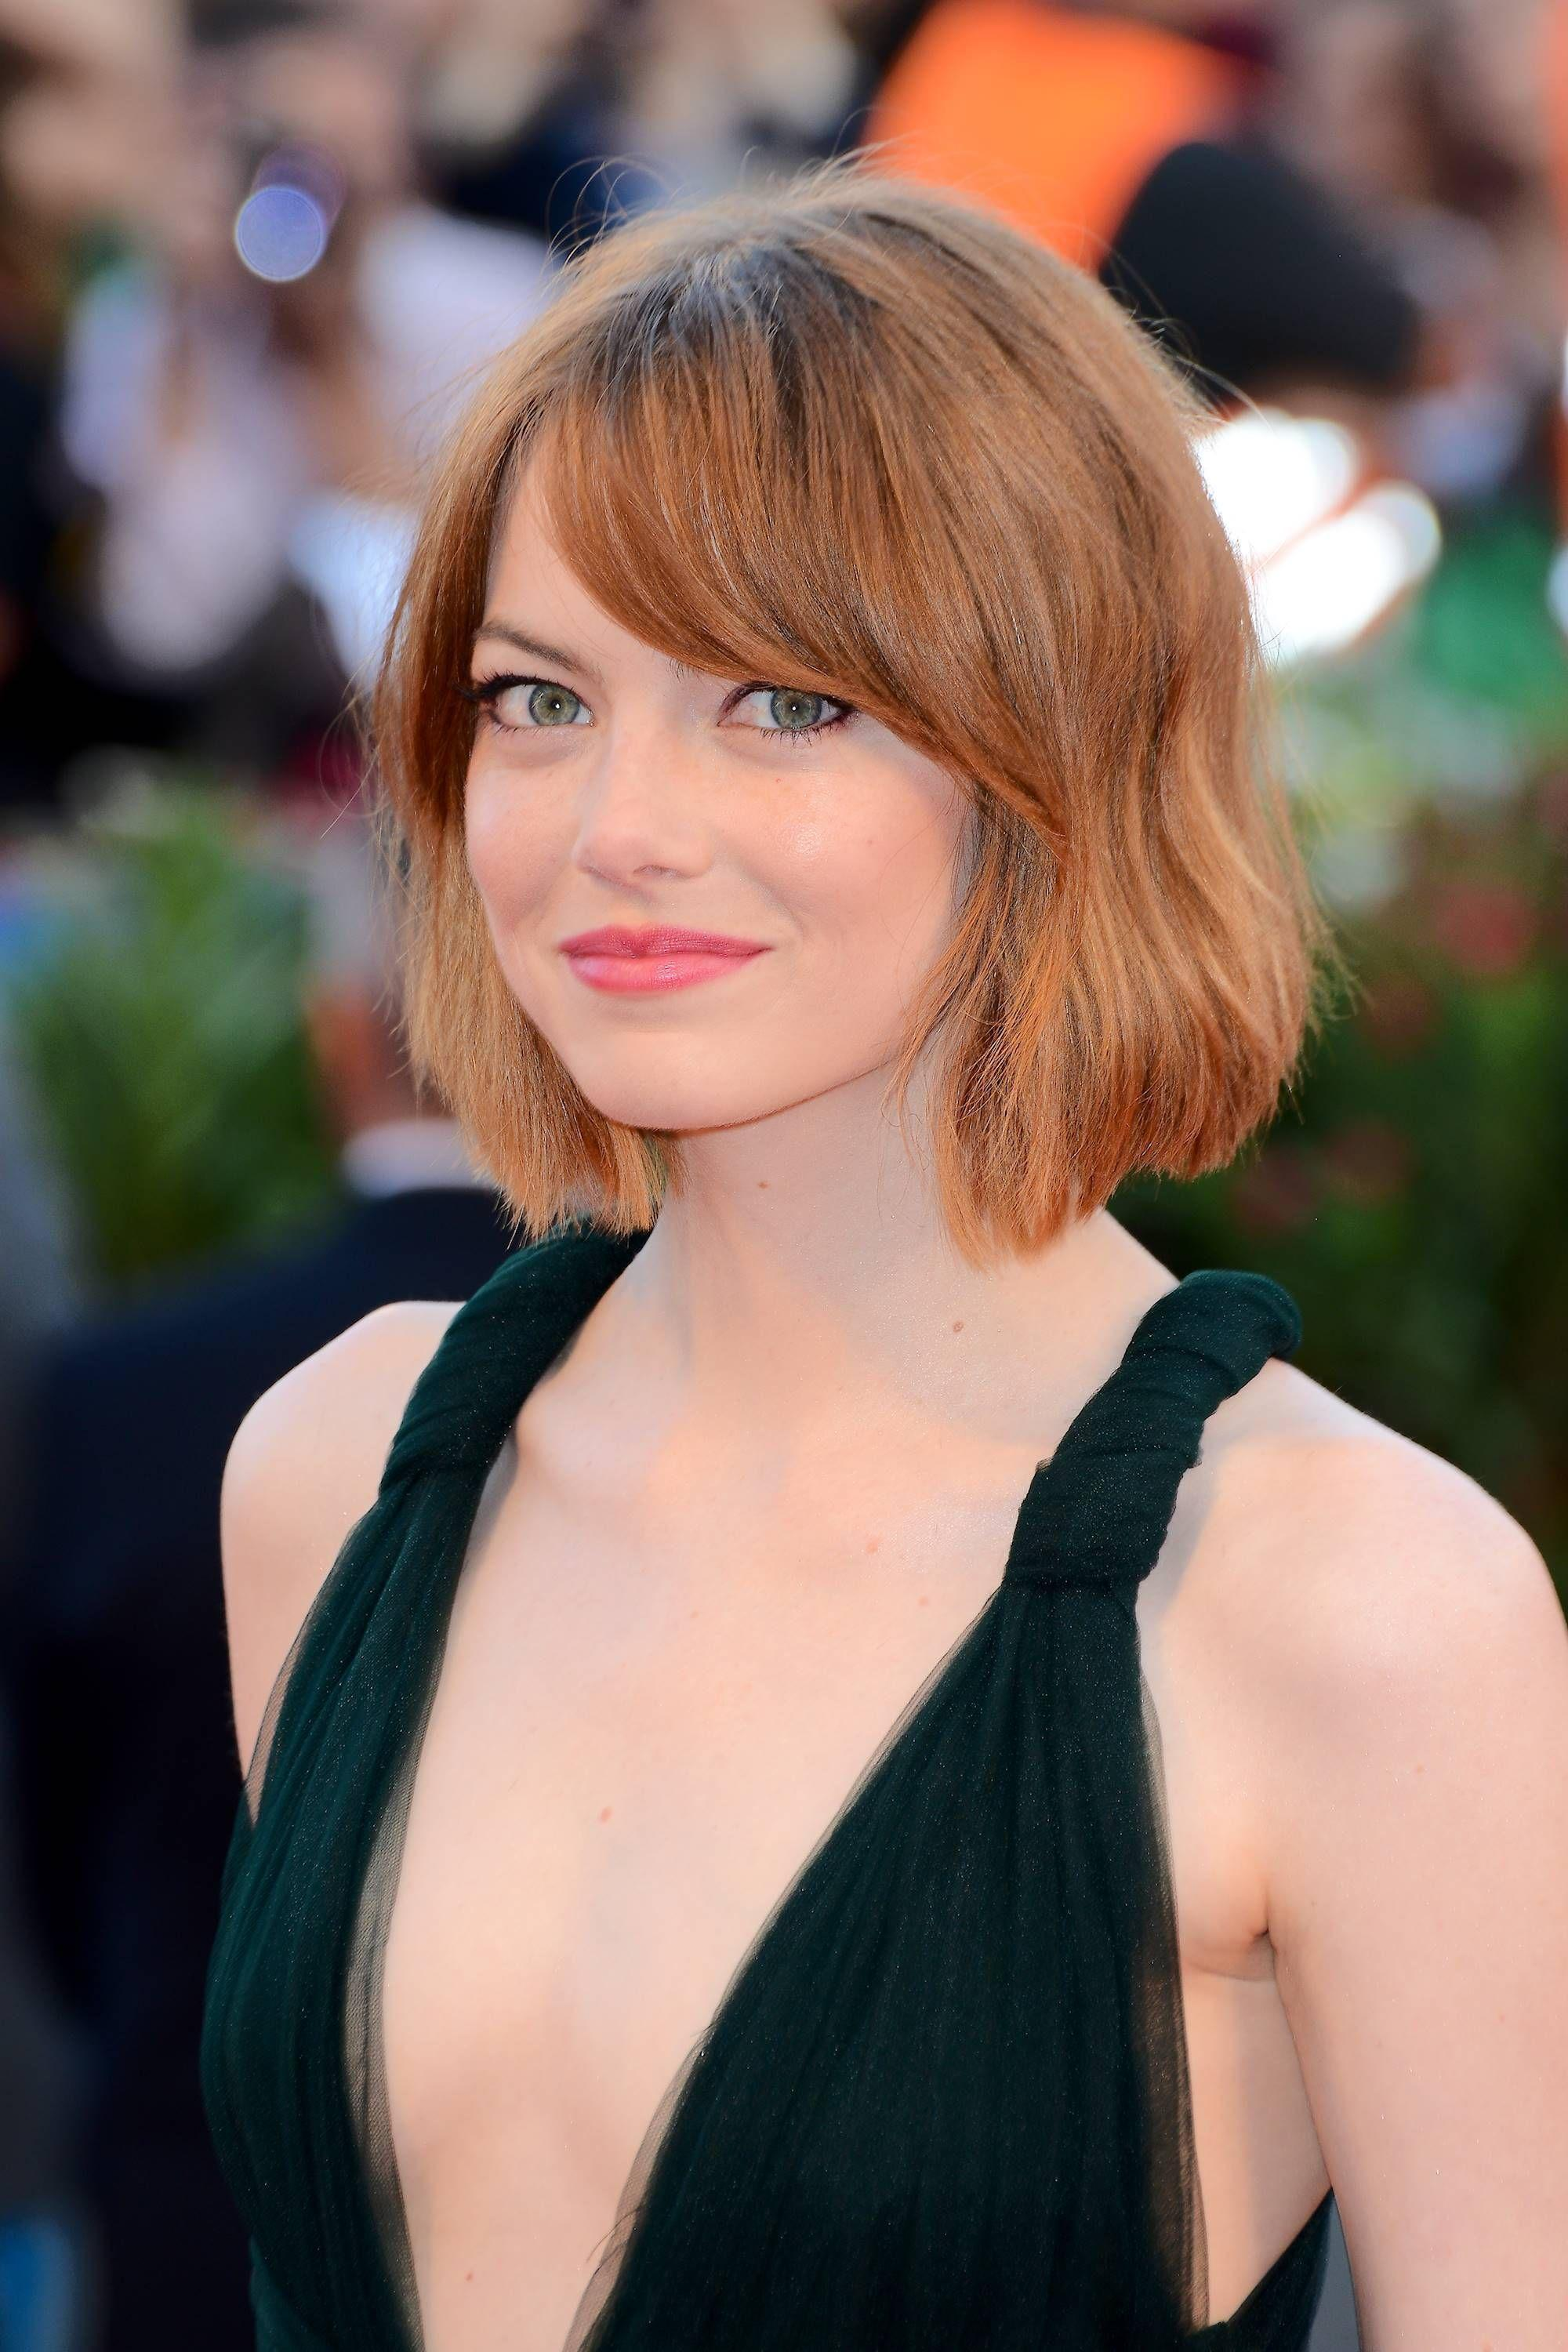 actress emma stone with short bob hair and side bangs